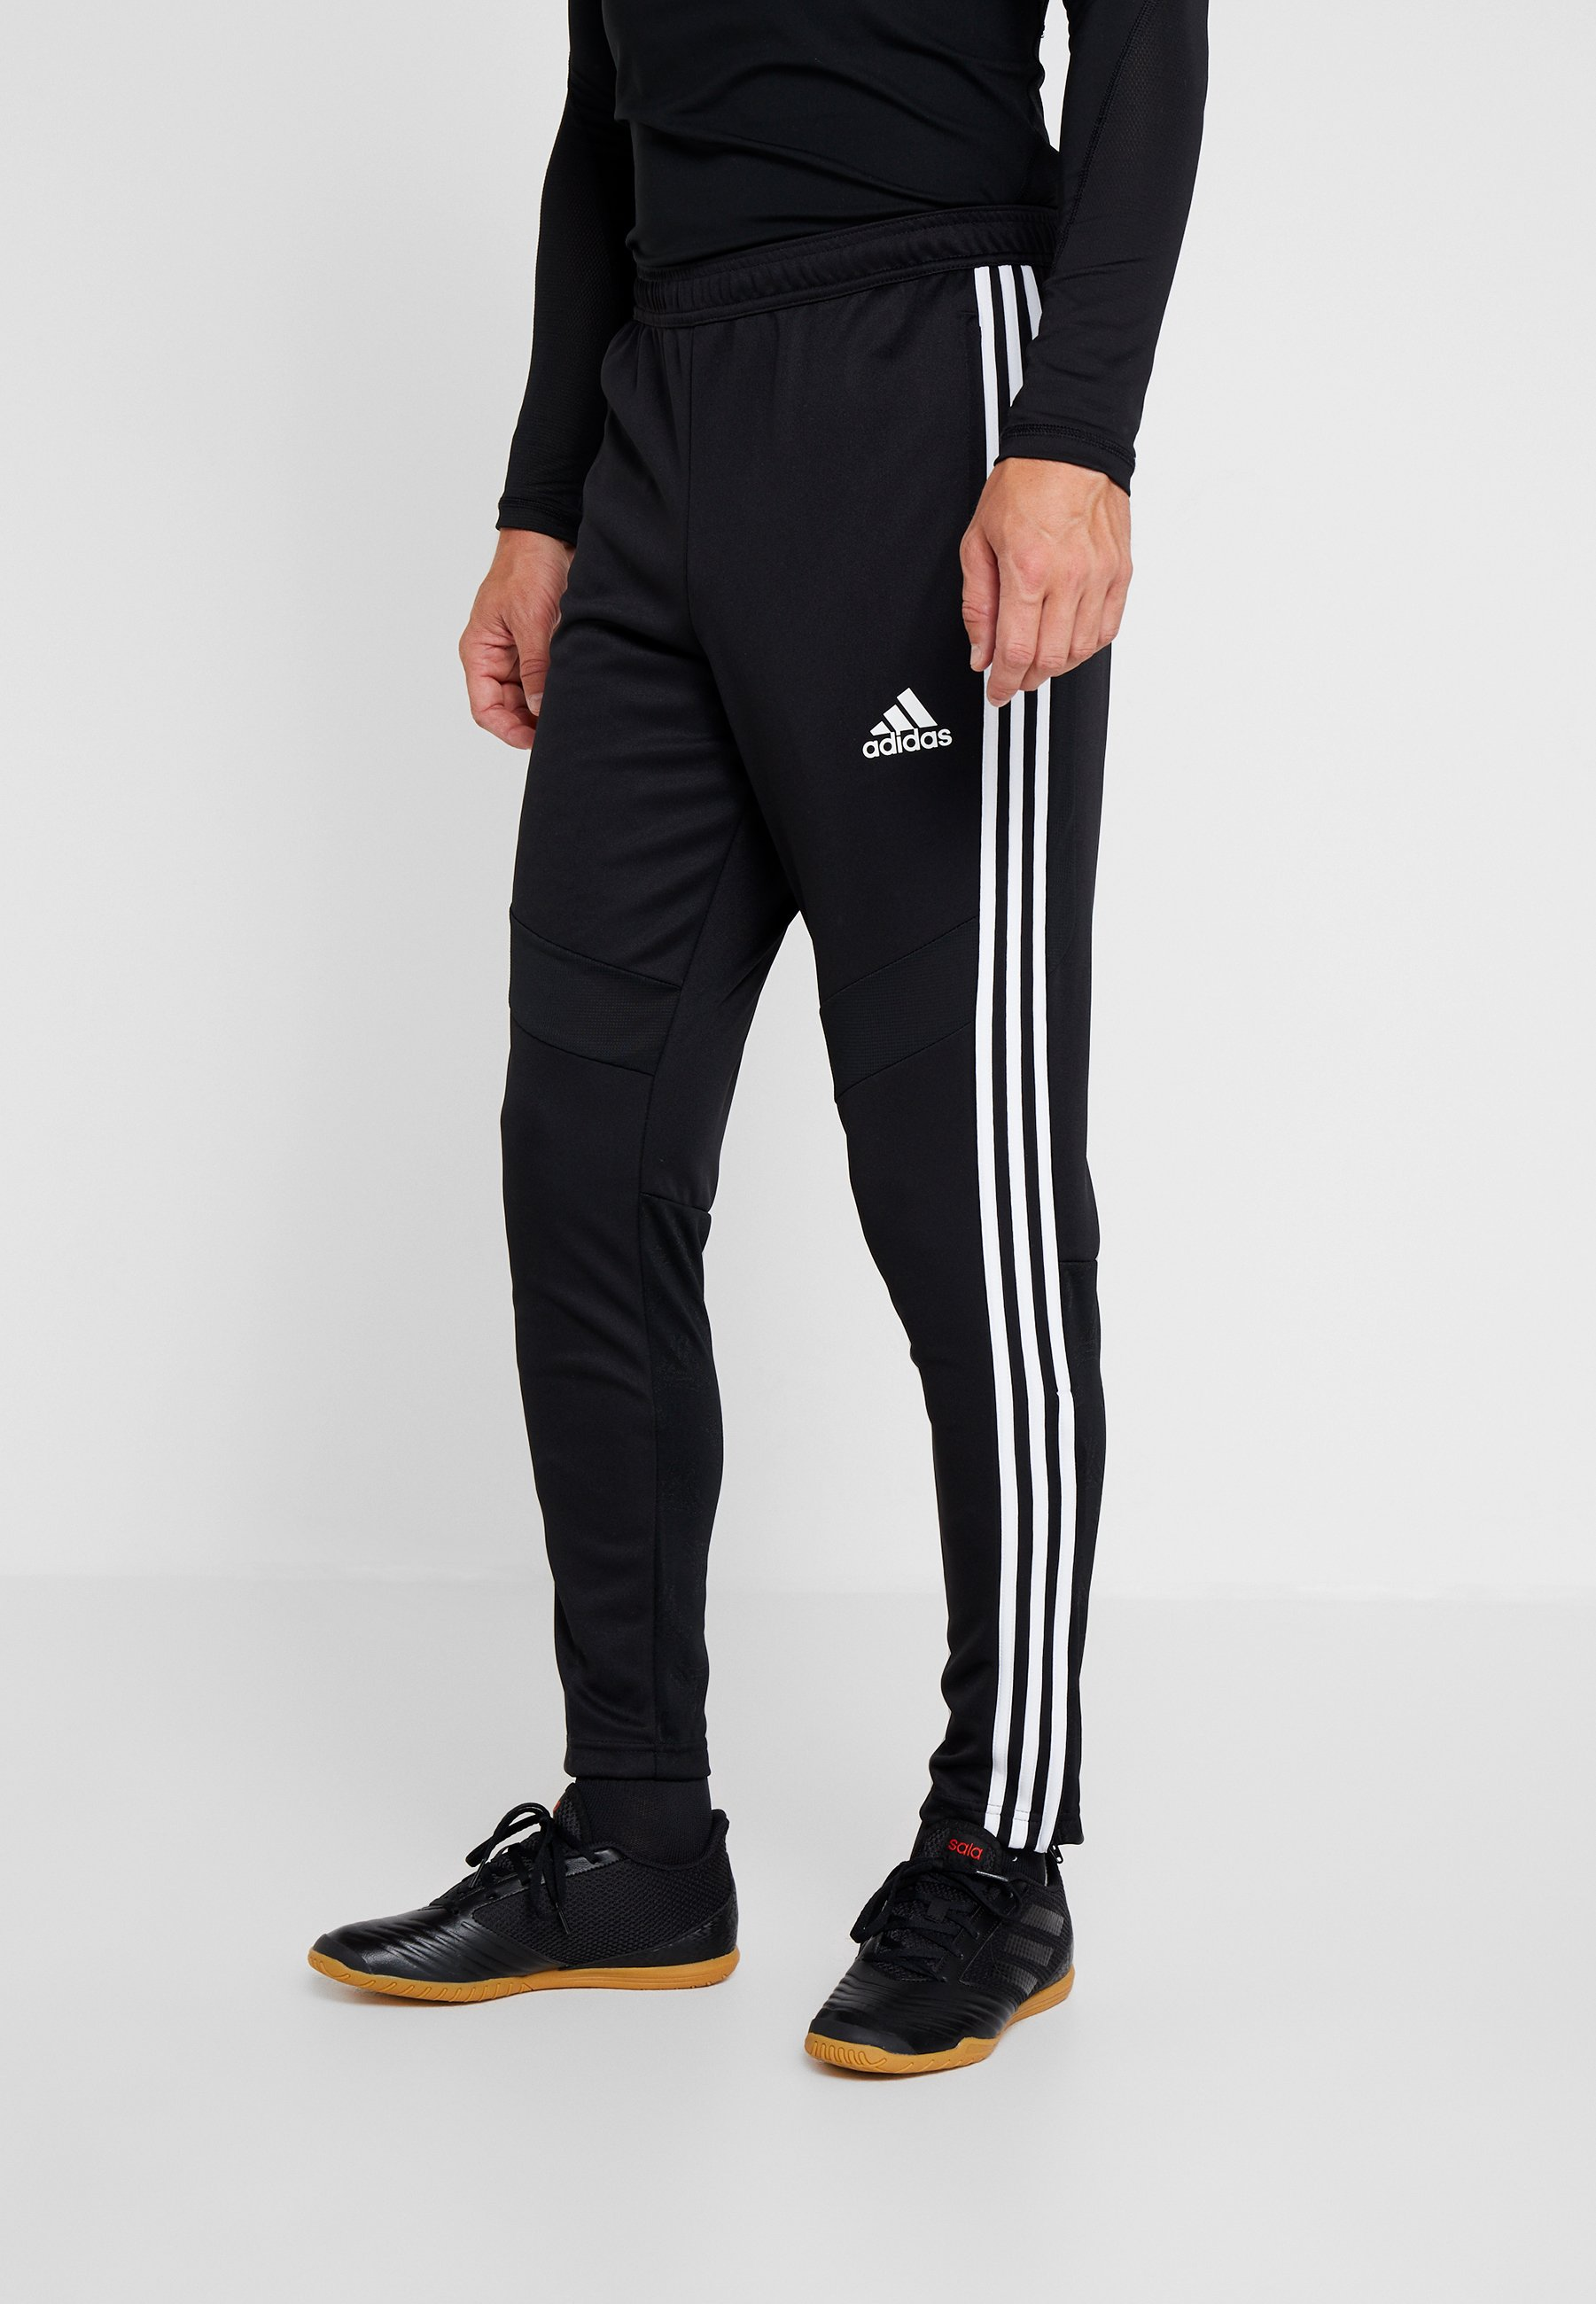 adidas Performance TANGO AEROREADY CLIMACOOL FOOTBALL PANTS